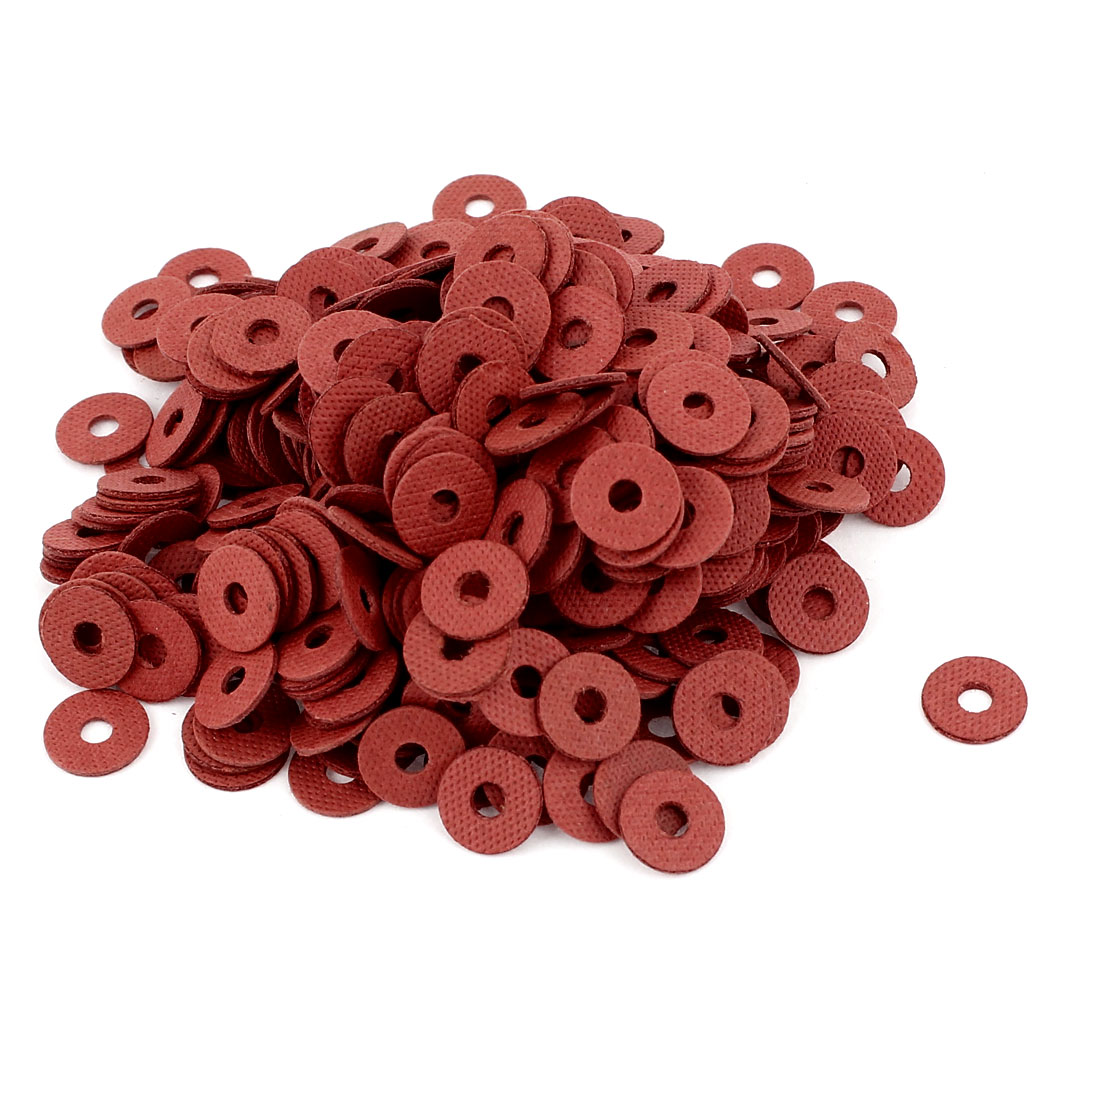 10Pcs 6mmx16mmx2mm Copper Crush Washer Flat Ring Gasket Fitting